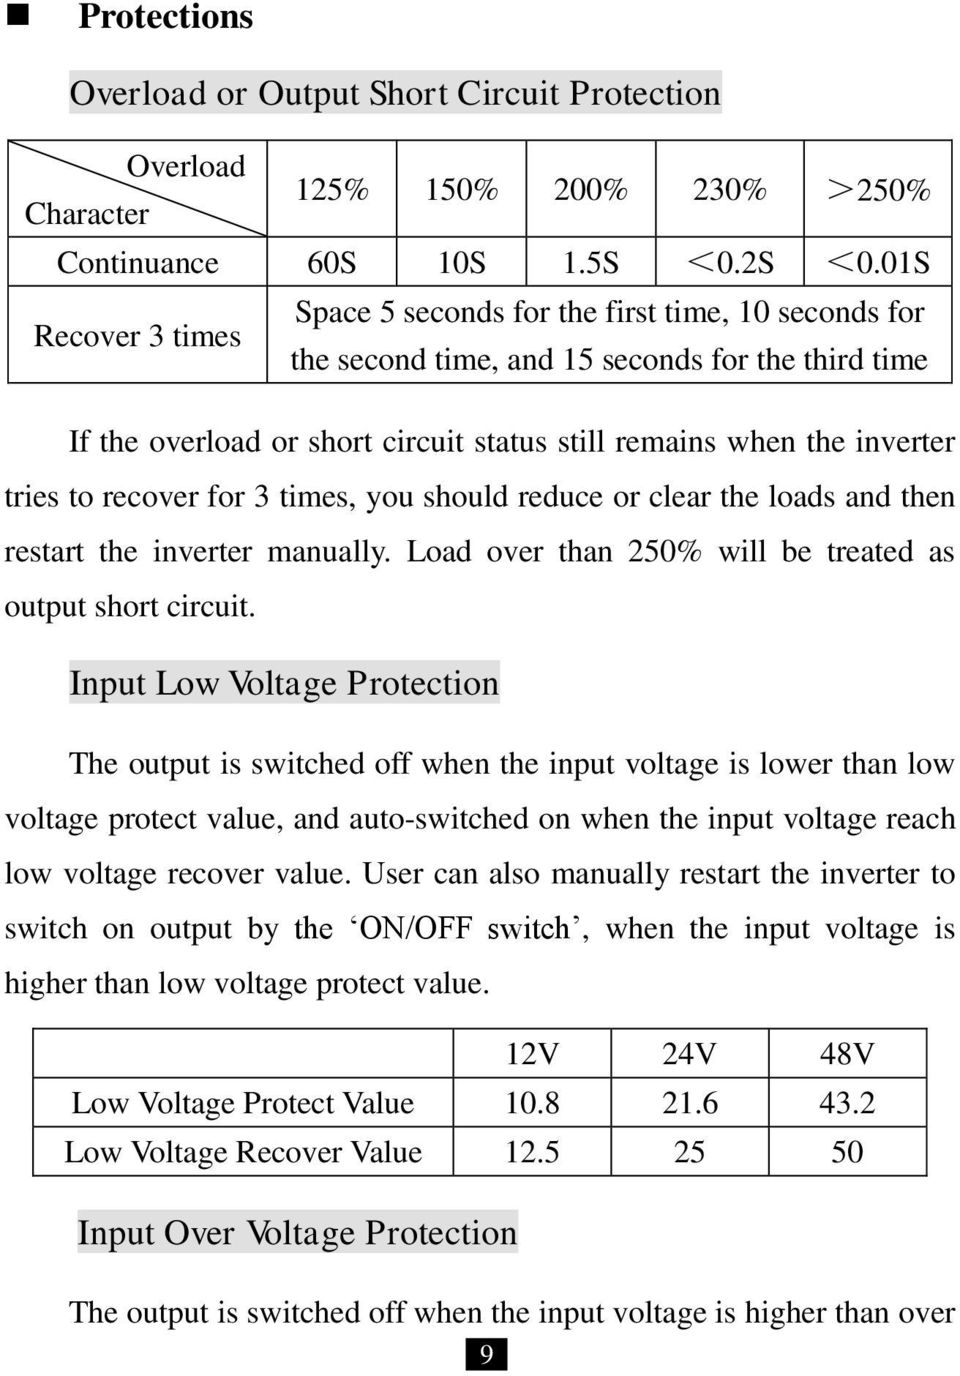 to recover for 3 times, you should reduce or clear the loads and then restart the inverter manually. Load over than 250% will be treated as output short circuit.